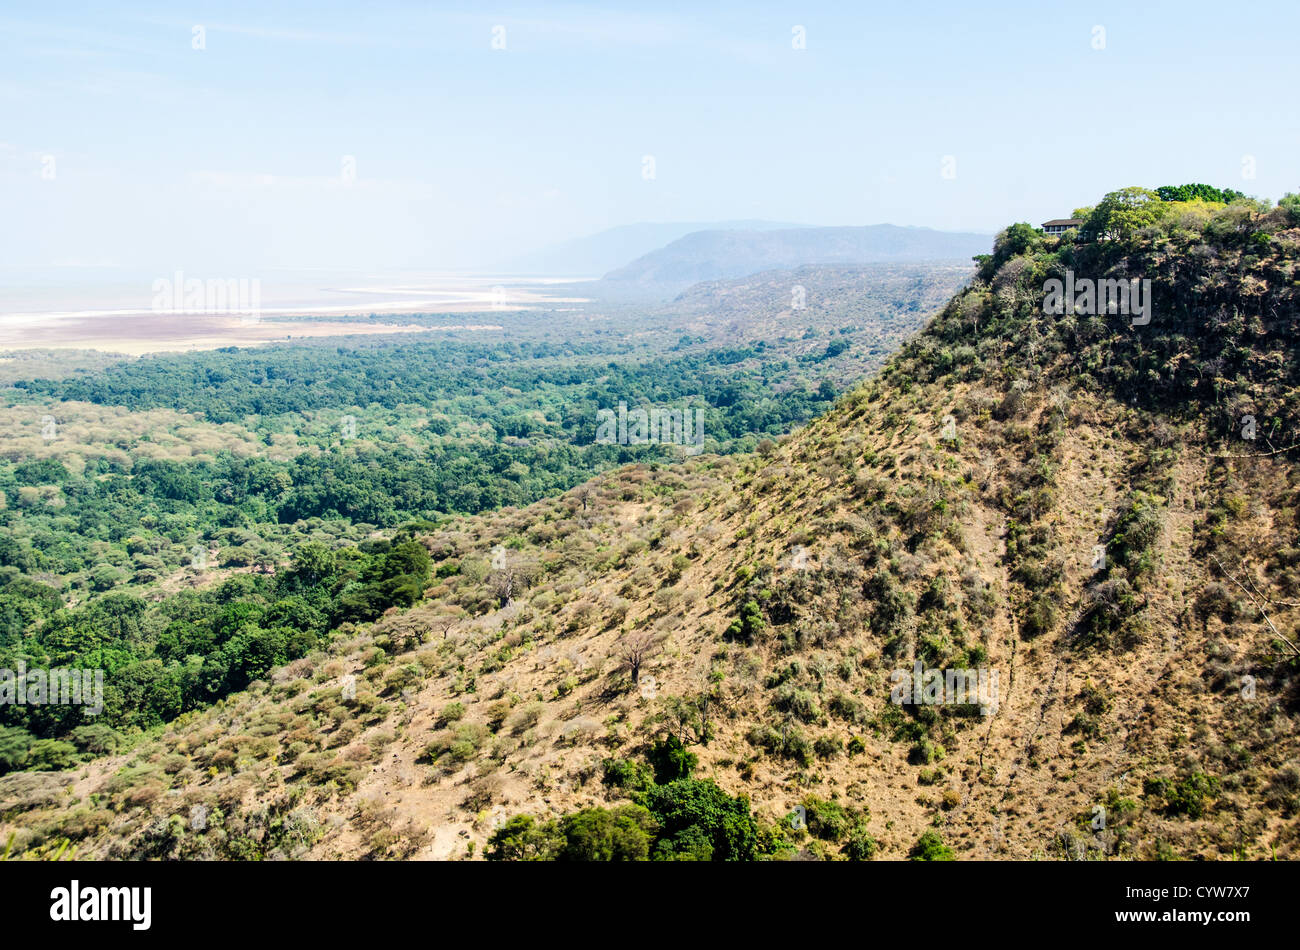 LAKE MANYARA NATIONAL PARK, Tanzania - A view out over Lake Manyara National Park from an elevated point just outside - Stock Image